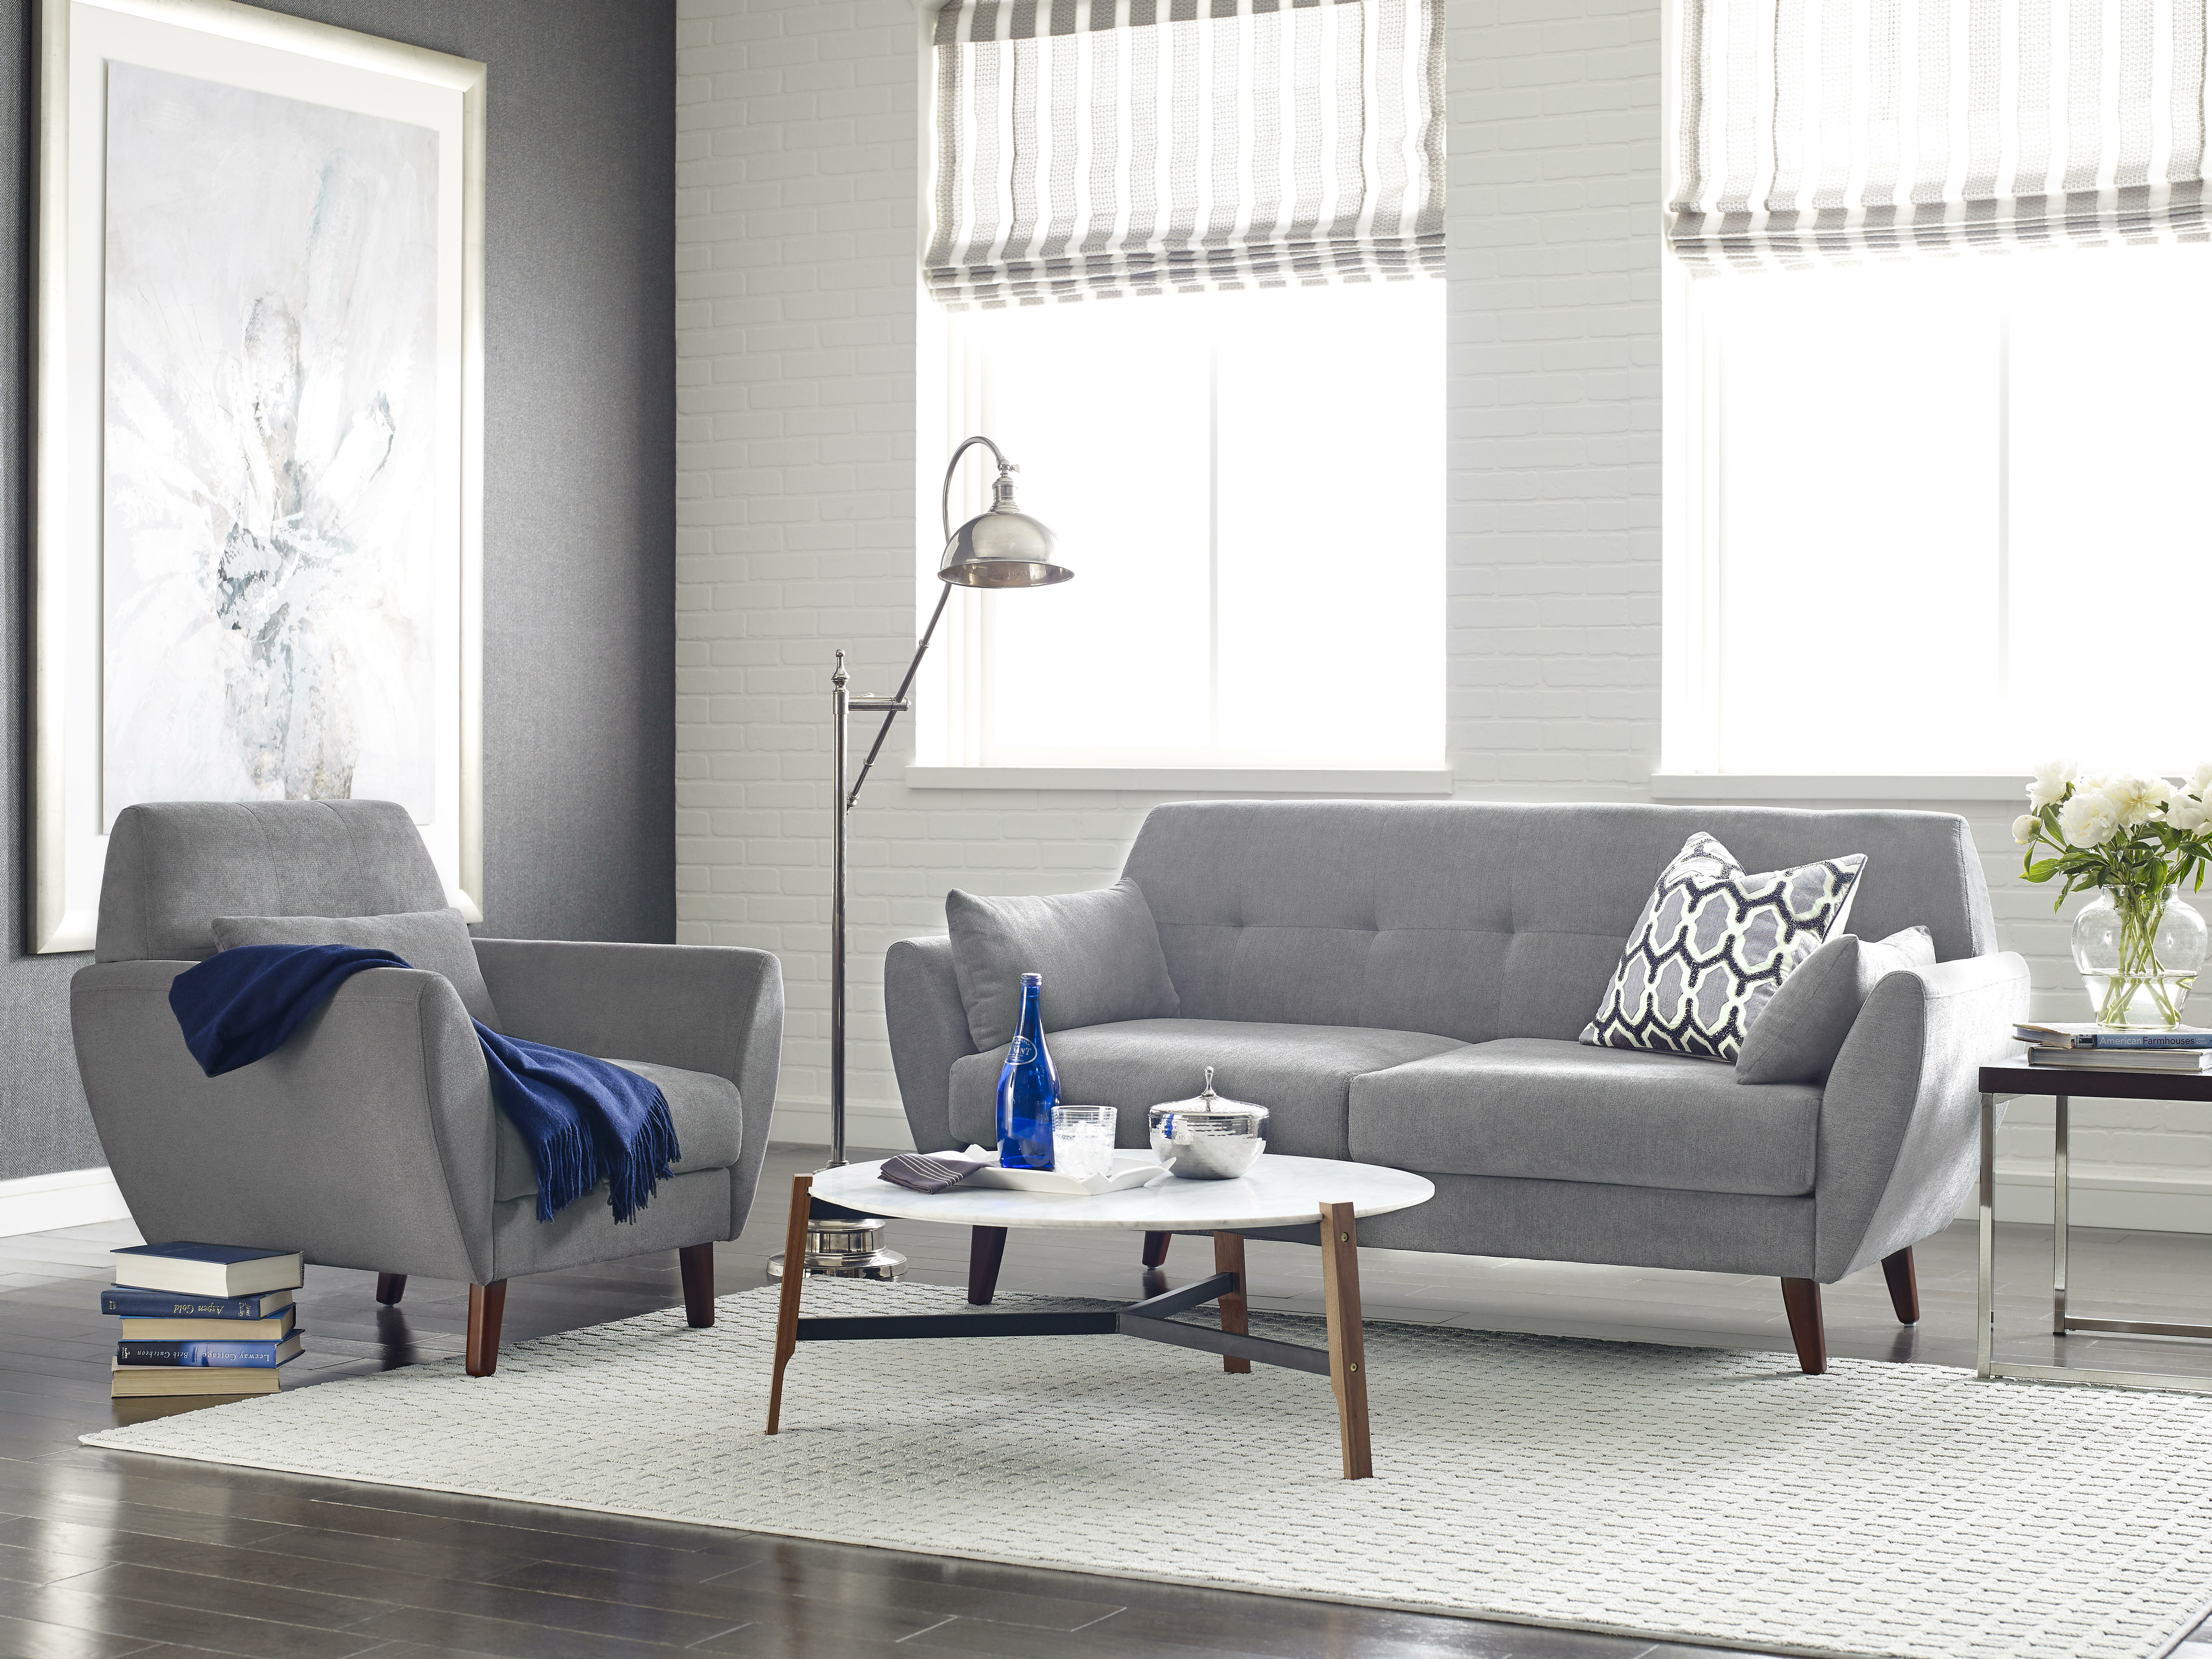 Serta at Home Artesia Configurable Living Room Set & Reviews | Wayfair